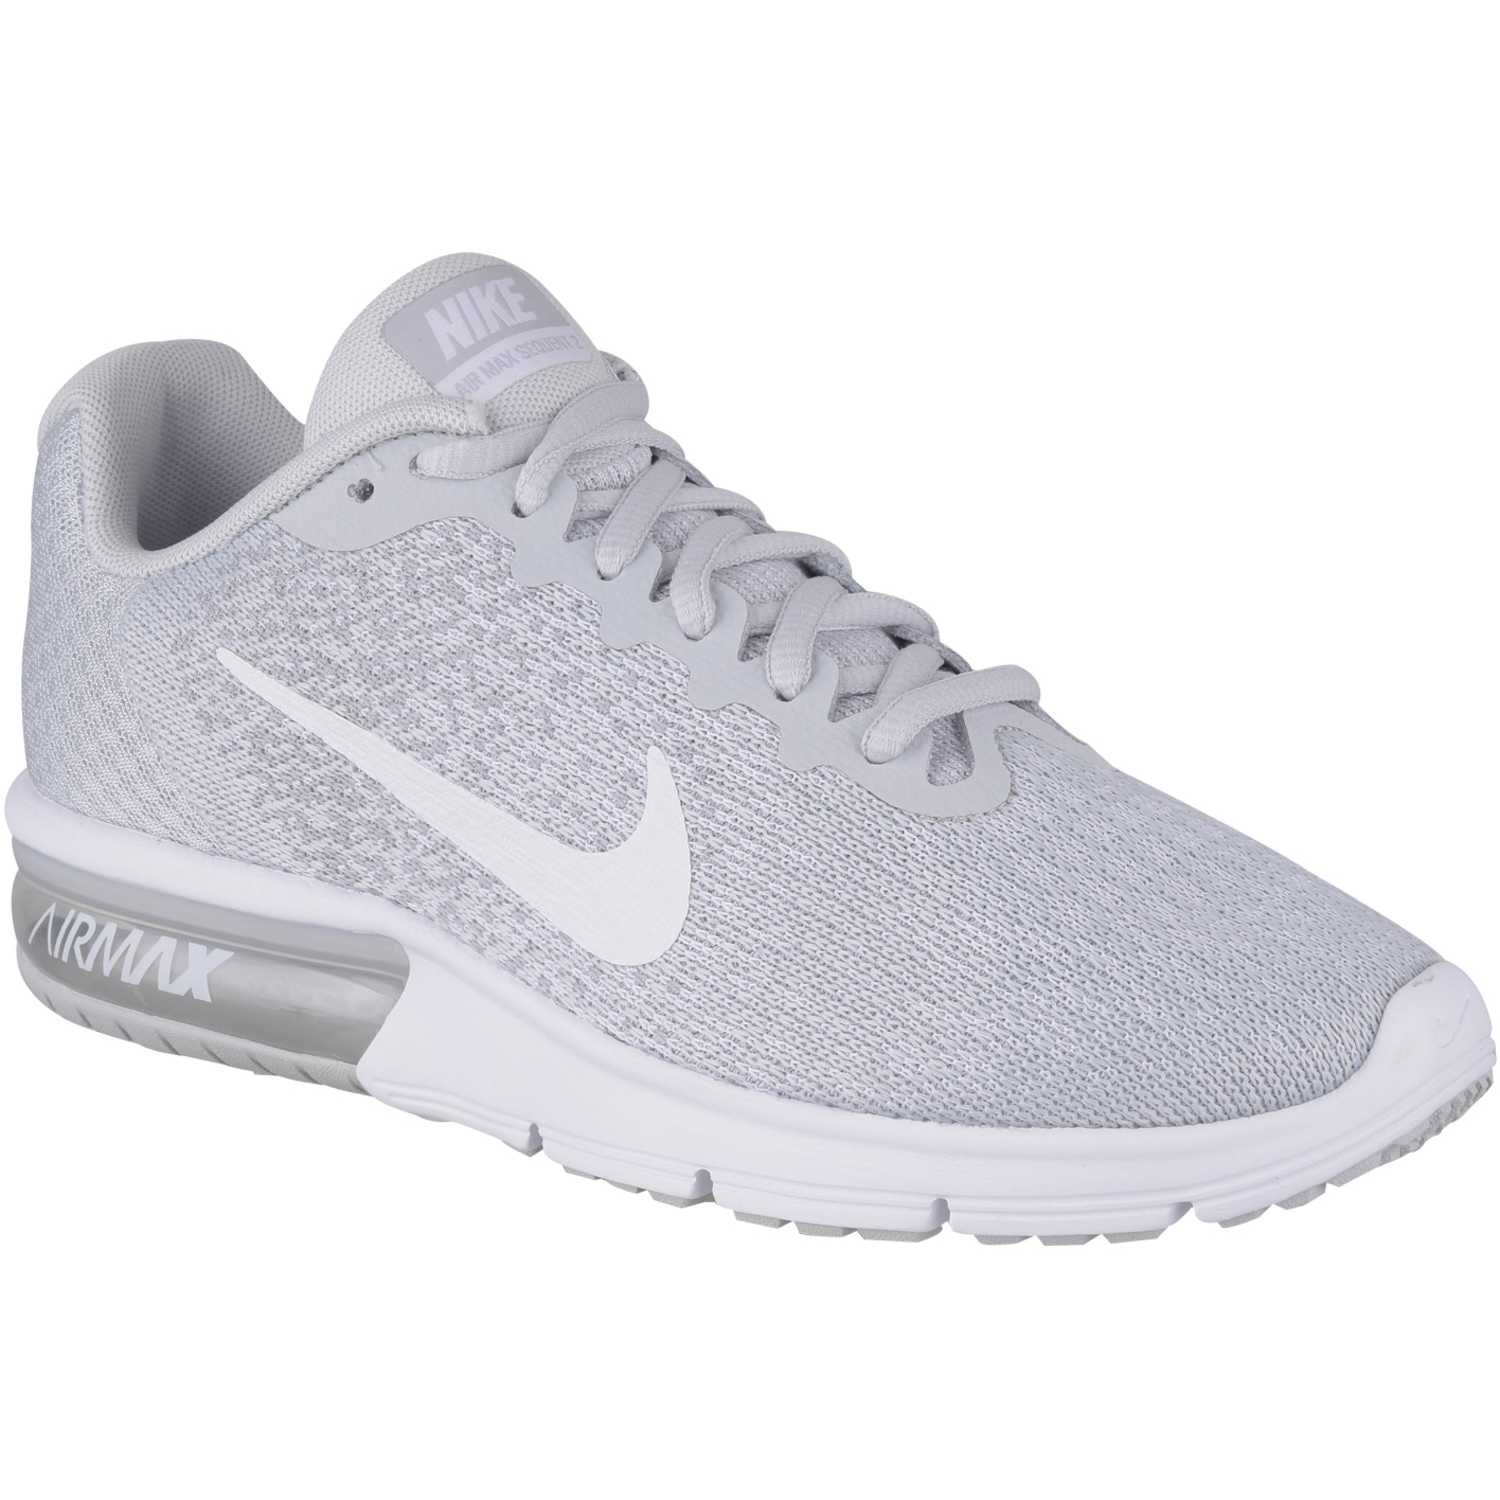 Deportivo de Mujer Nike Gris blanco wmns air max sequent 2